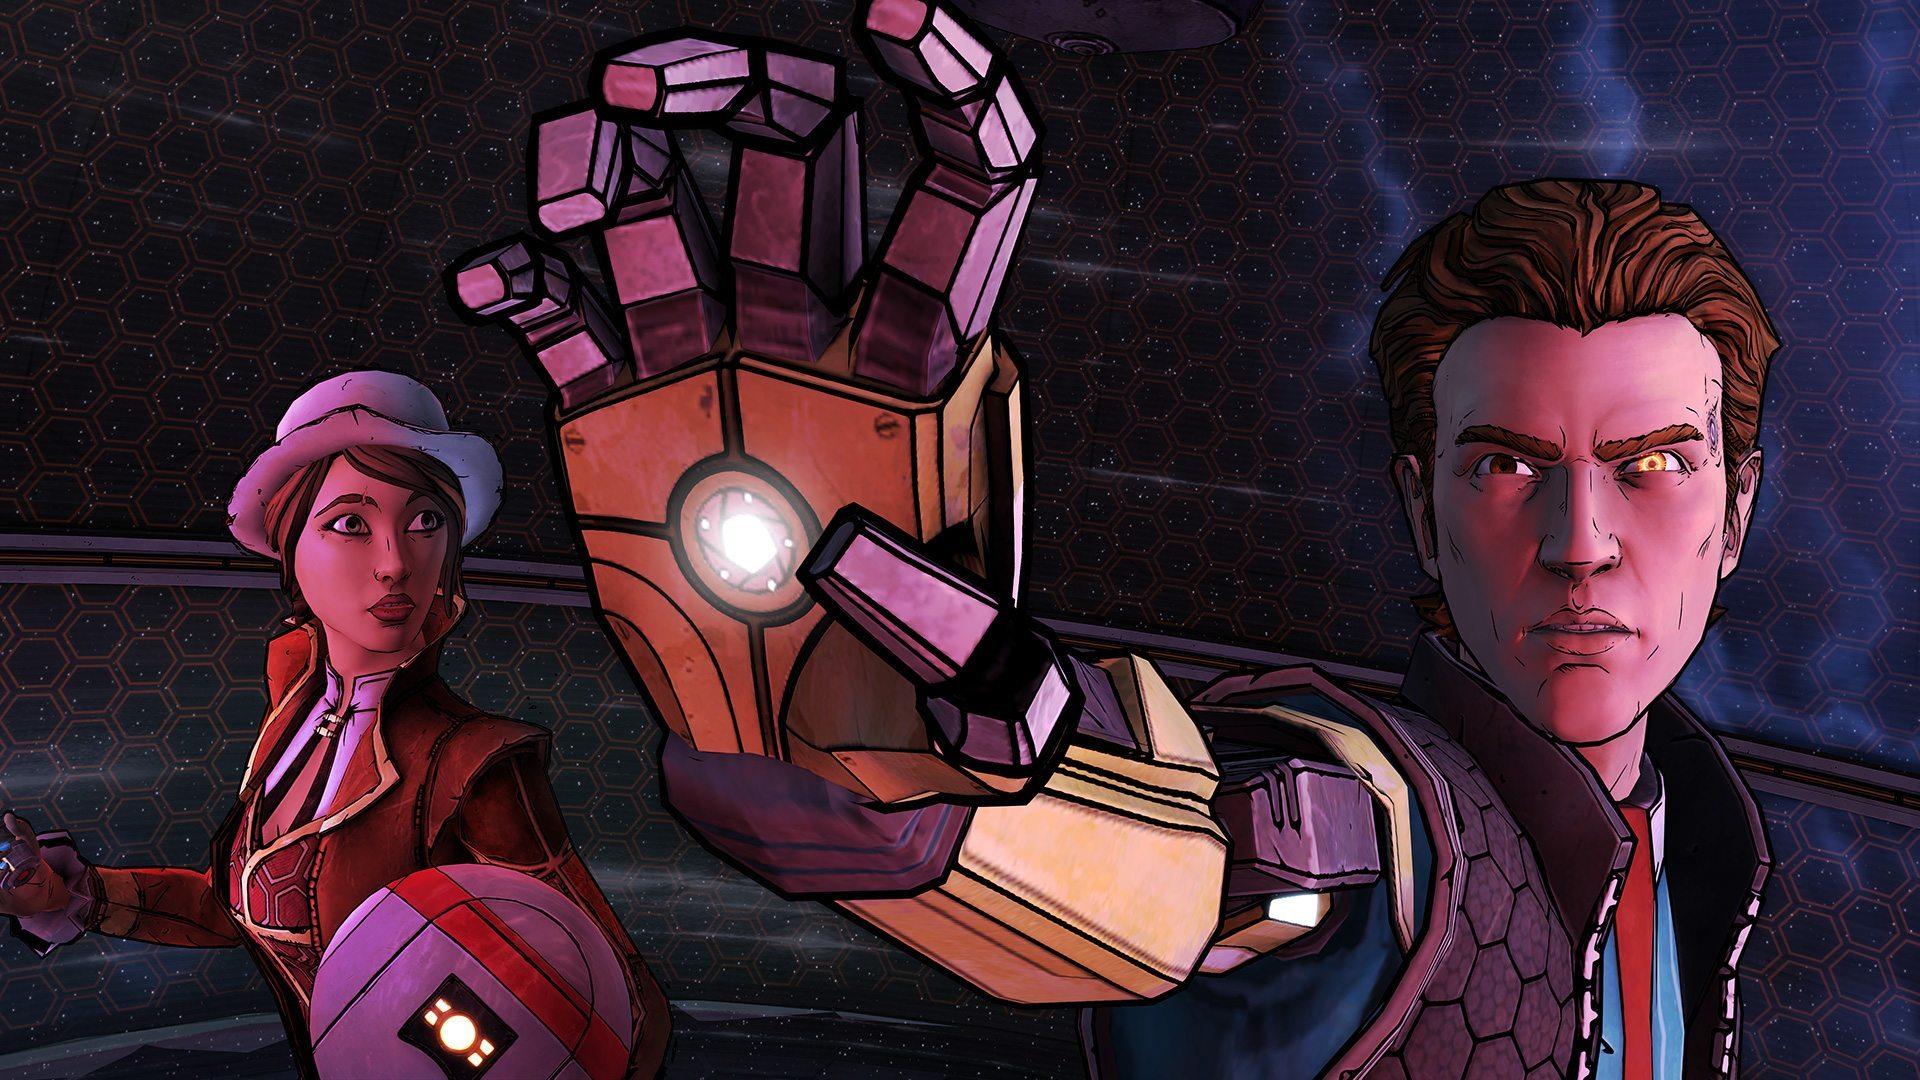 Rhys and Fiona in Tales from the Borderlands